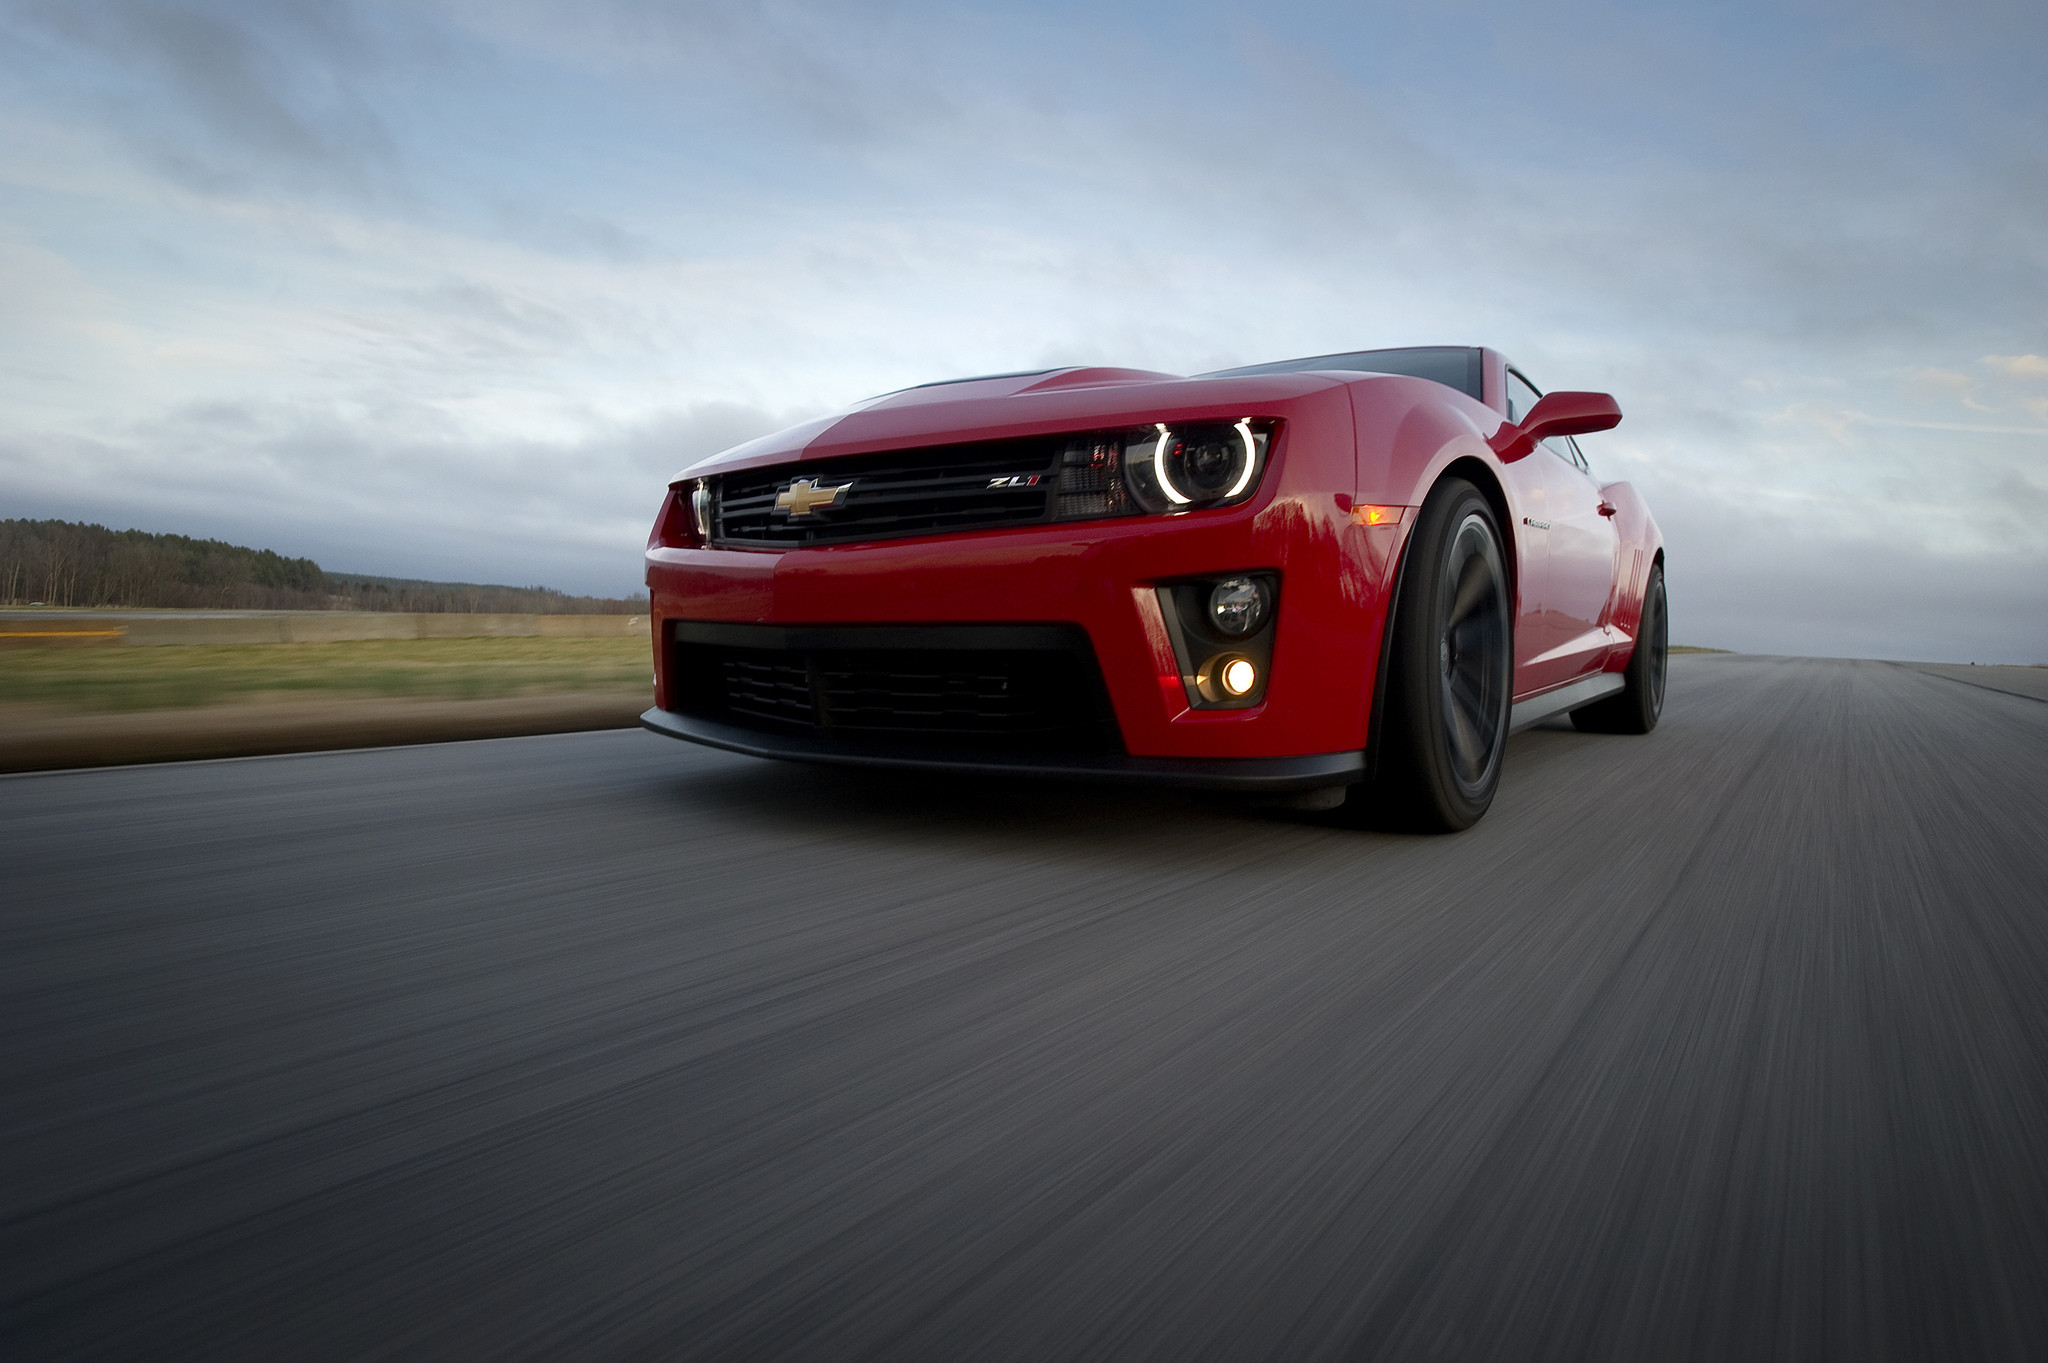 2048x1363 2018 Chevrolet Camaro ZL1 1LE Wallpaper | HD Car Wallpapers Chevrolet Camaro  ZL1 2012 Wallpaper | HD Car Wallpapers ...